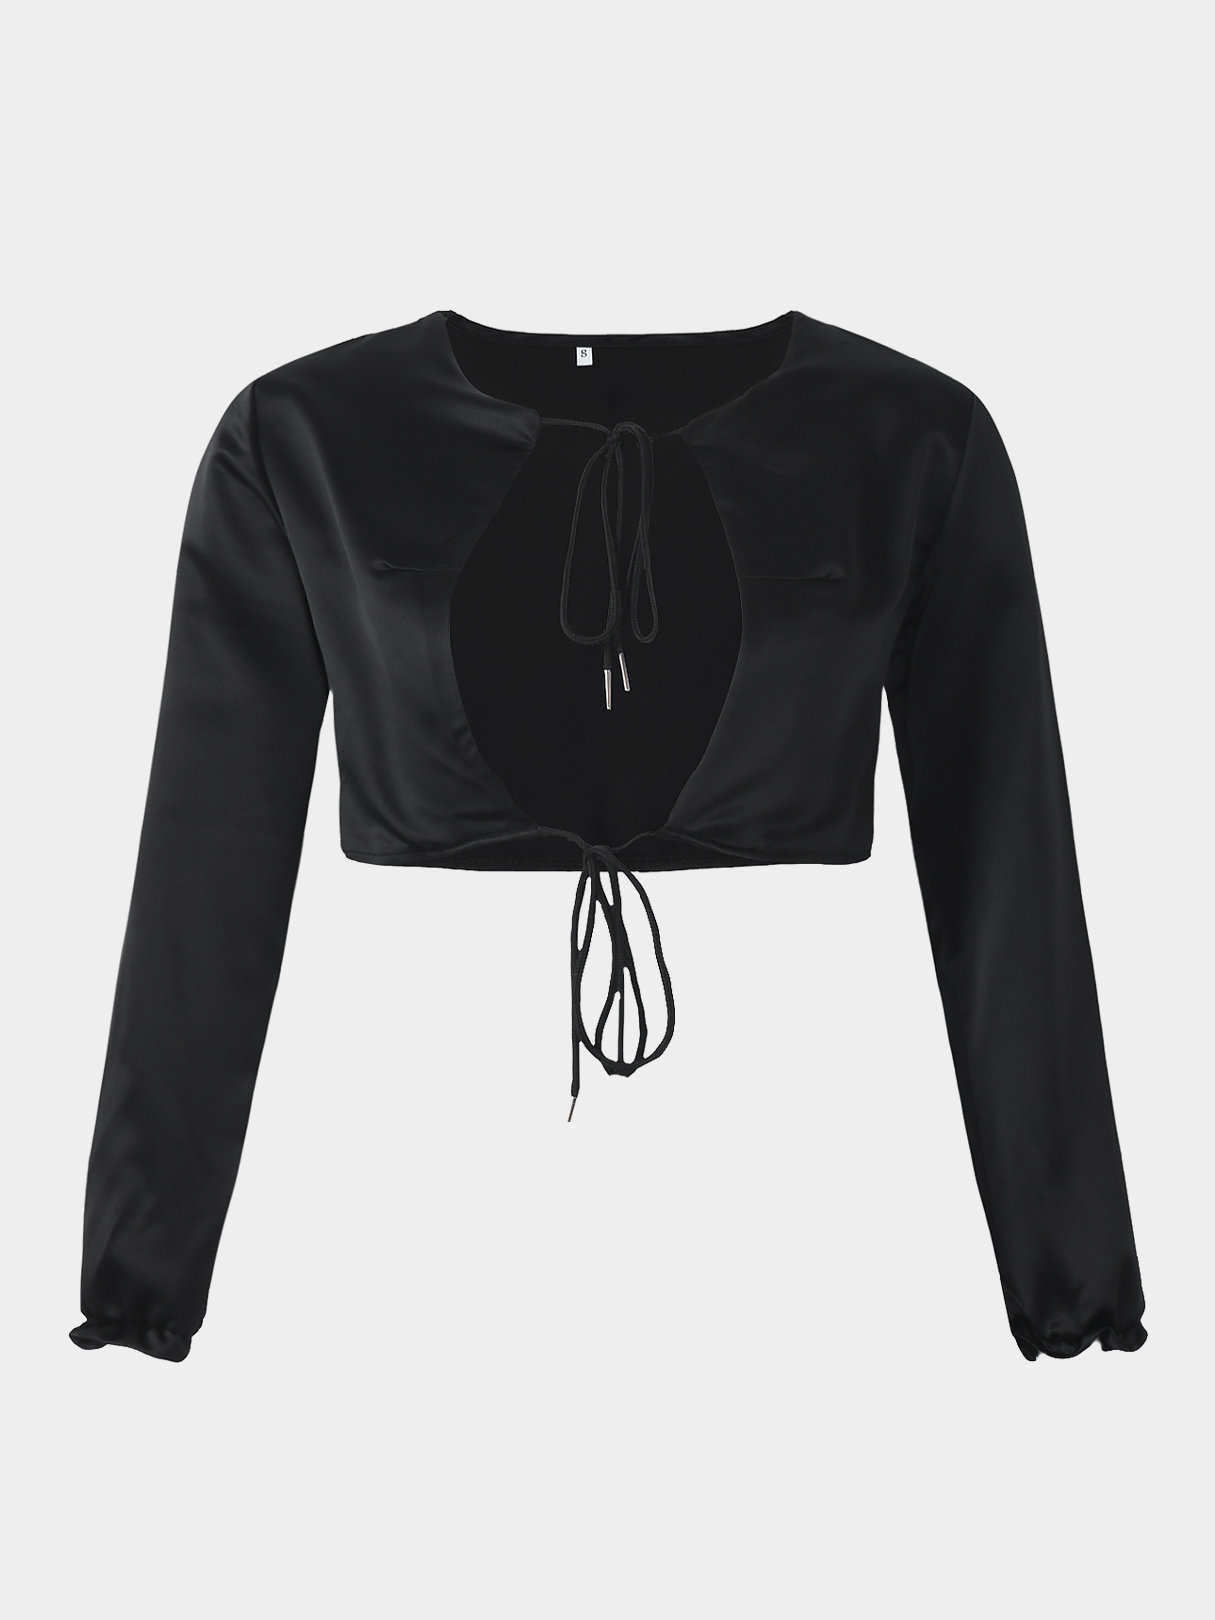 Sexy Cutout Lace-up Front Crop Top in Black fashion lace up hollow front crop top in black